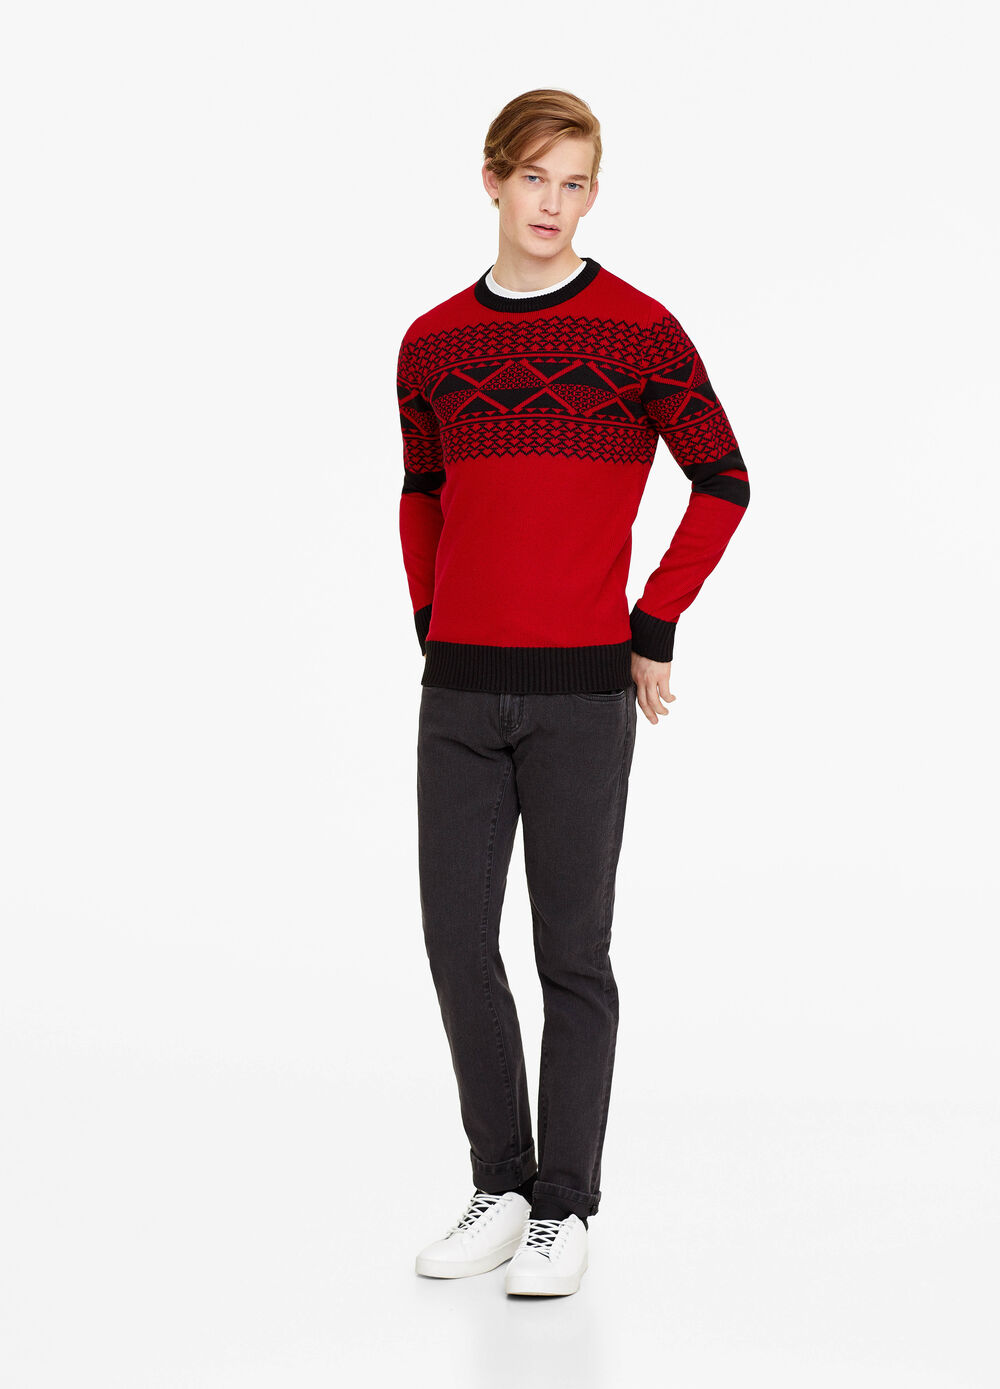 Pullover with geometric embroidery